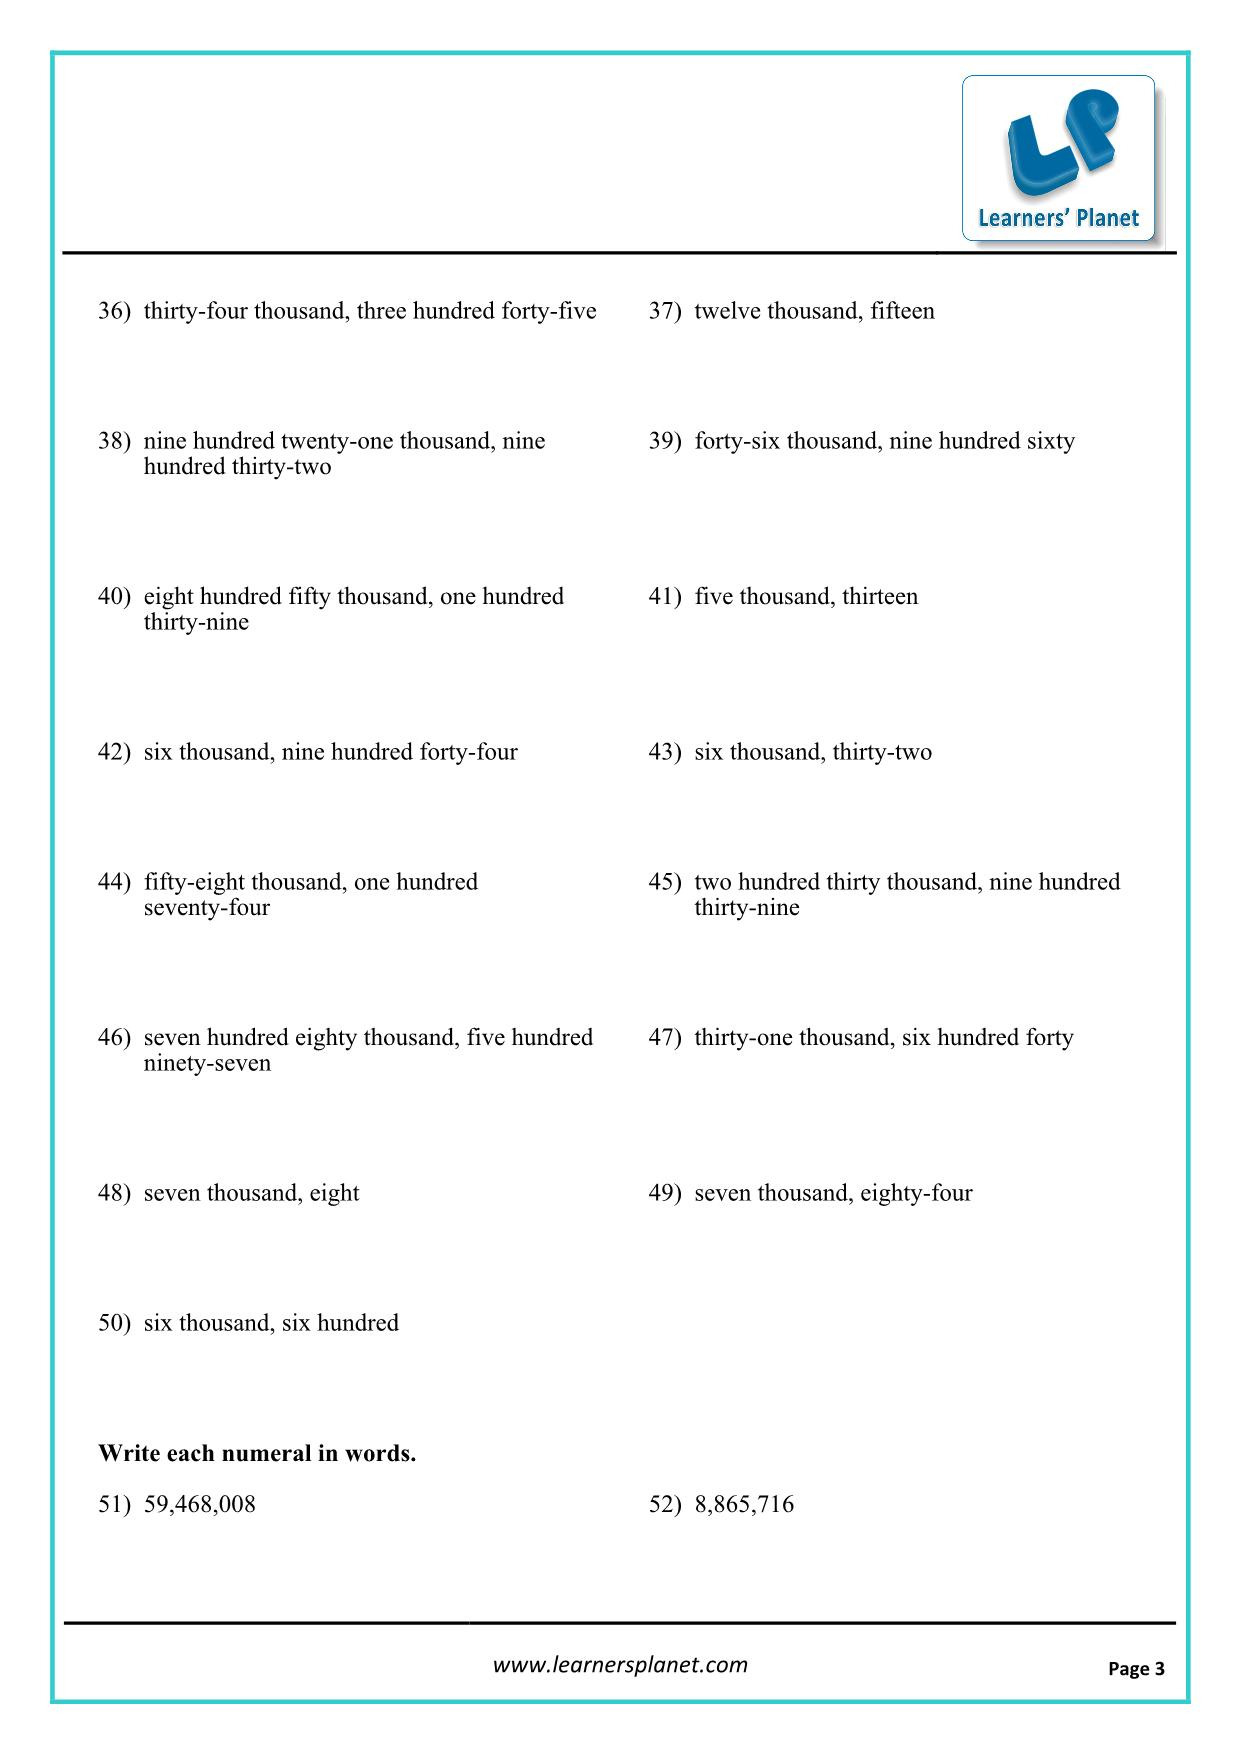 Worksheet On International Numbering System 5th Class